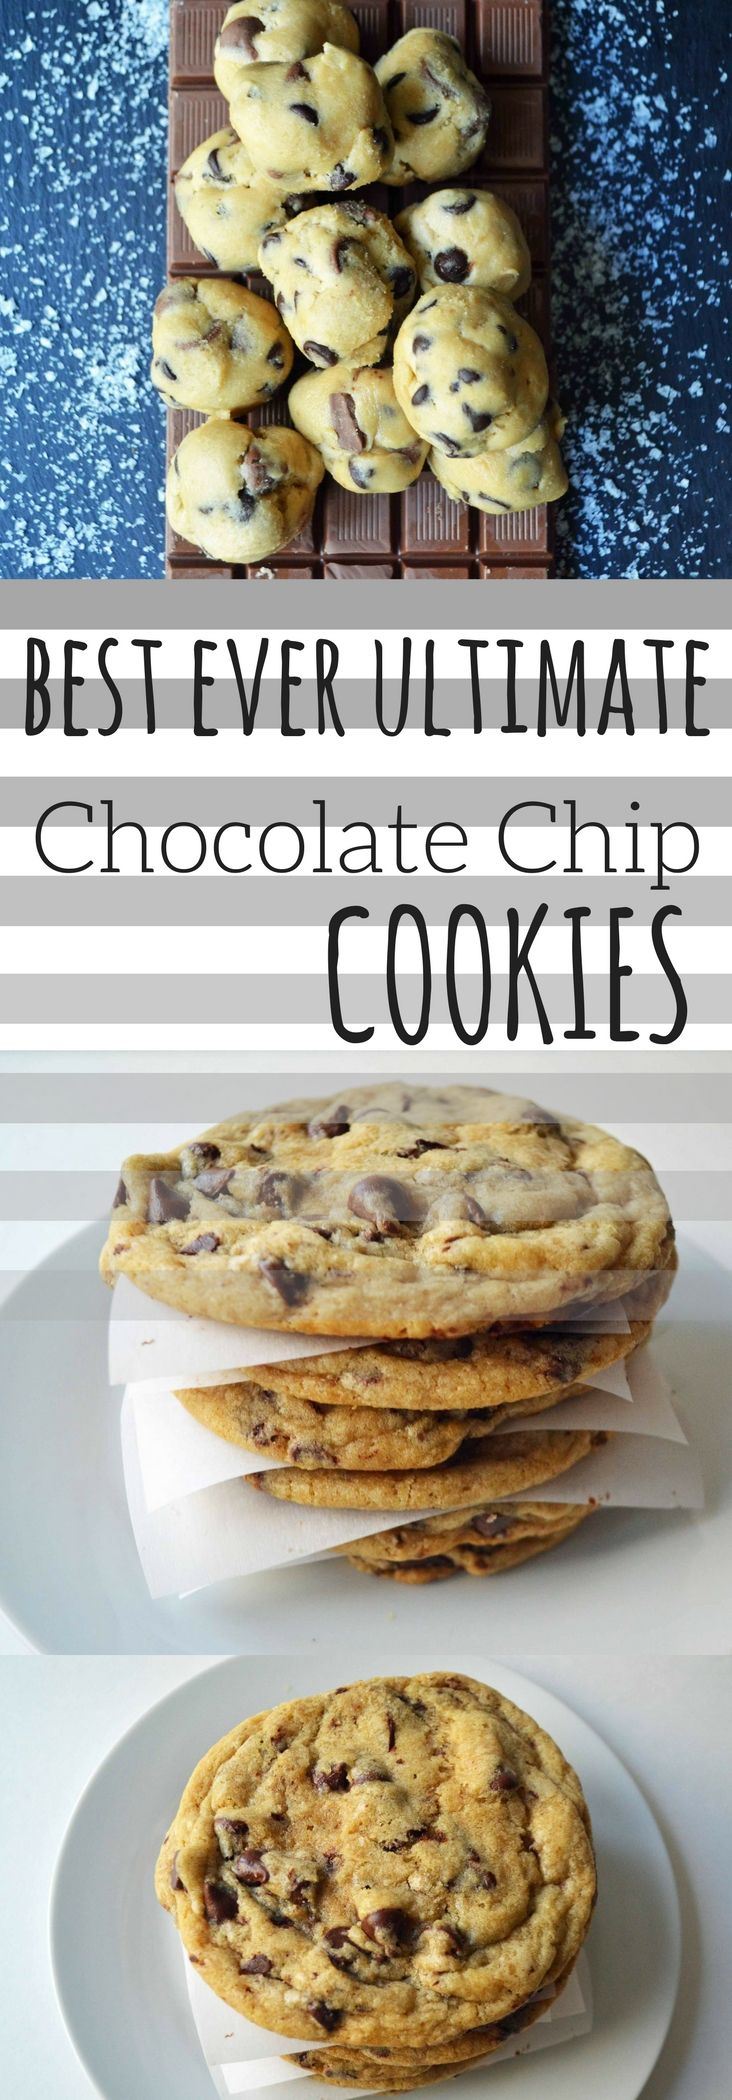 The Best Ever Ultimate Chocolate Chip Cookies. The classic recipe with a few twists and all of the secrets to making perfect chocolate chip cookies.